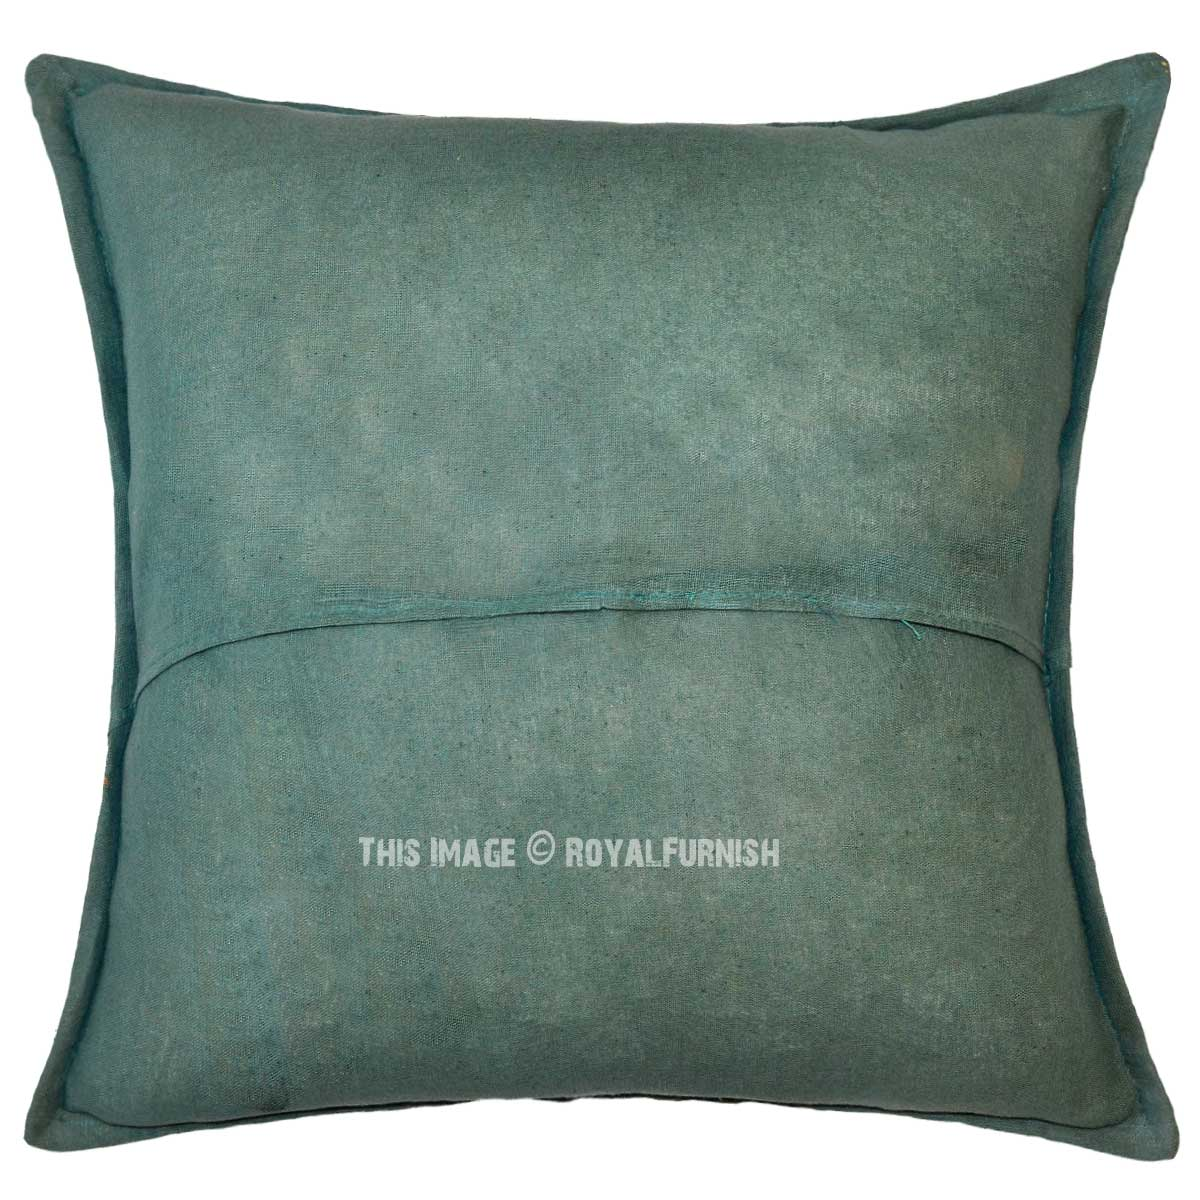 dark green sequin needlepoint patchwork embroidered cotton pillow cover 16x16. Black Bedroom Furniture Sets. Home Design Ideas